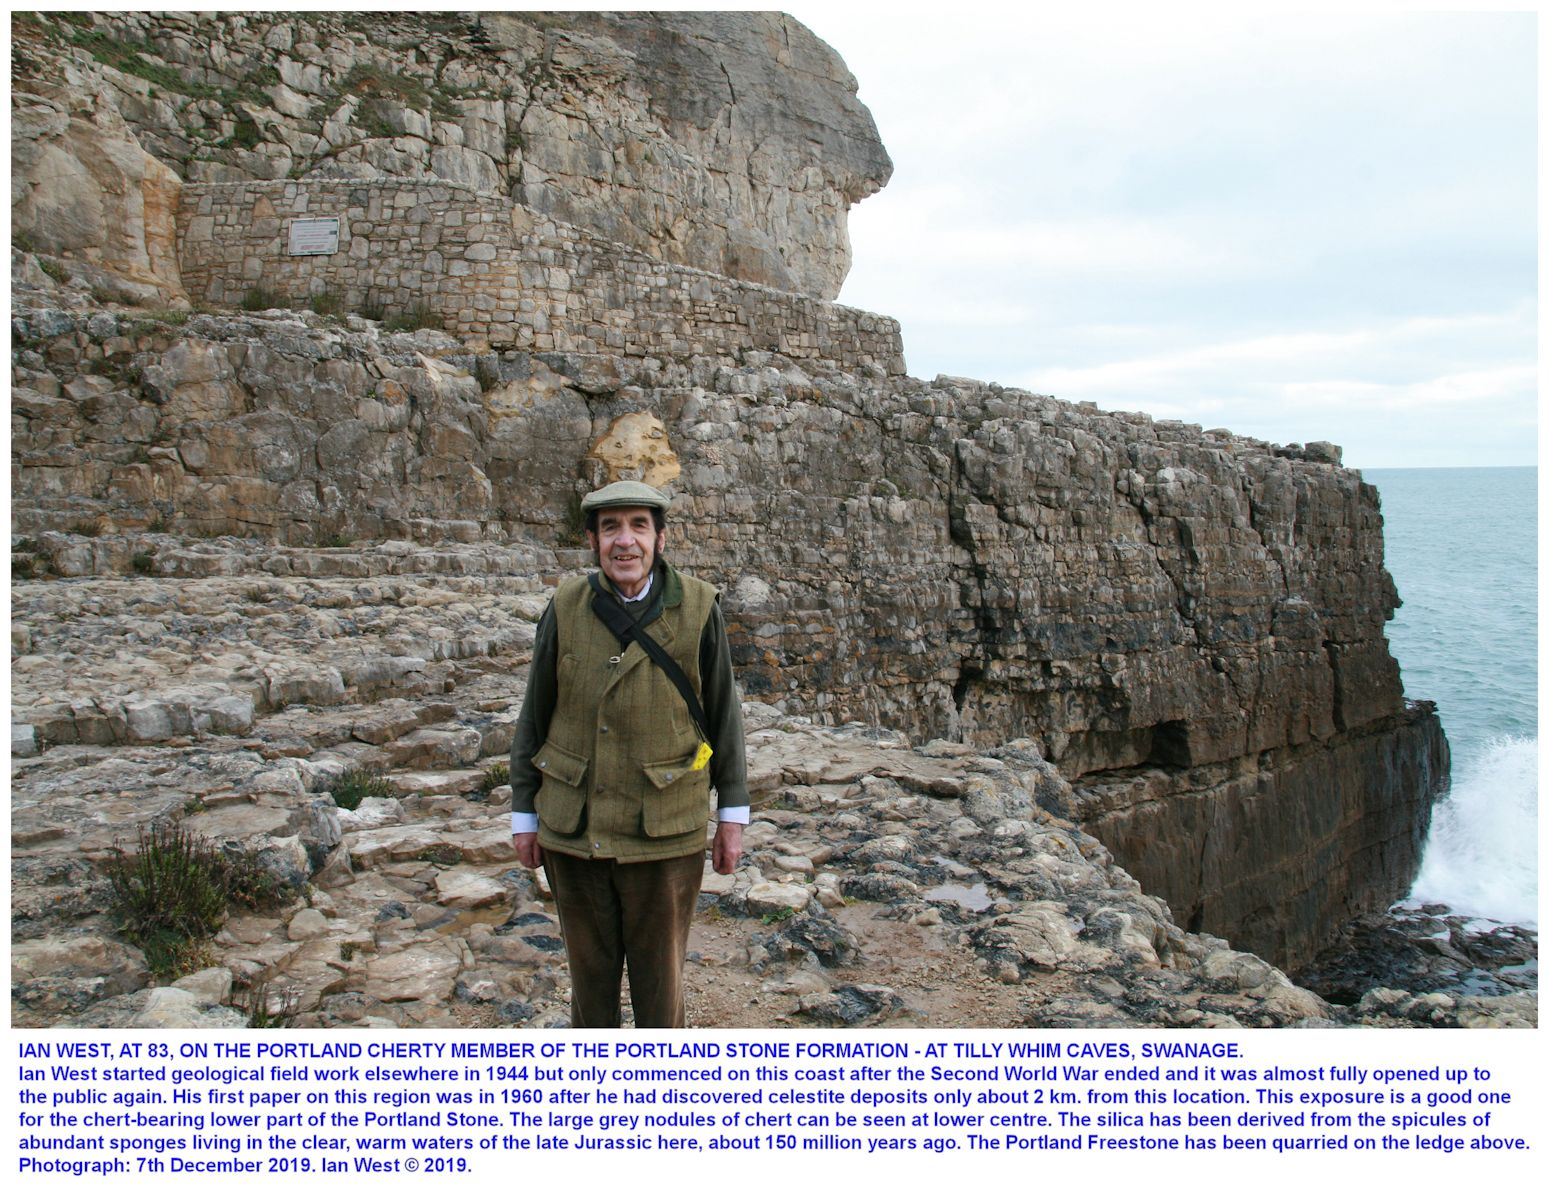 Ian West at Tilly Whim Caves on the coast near Swanage, Dorset